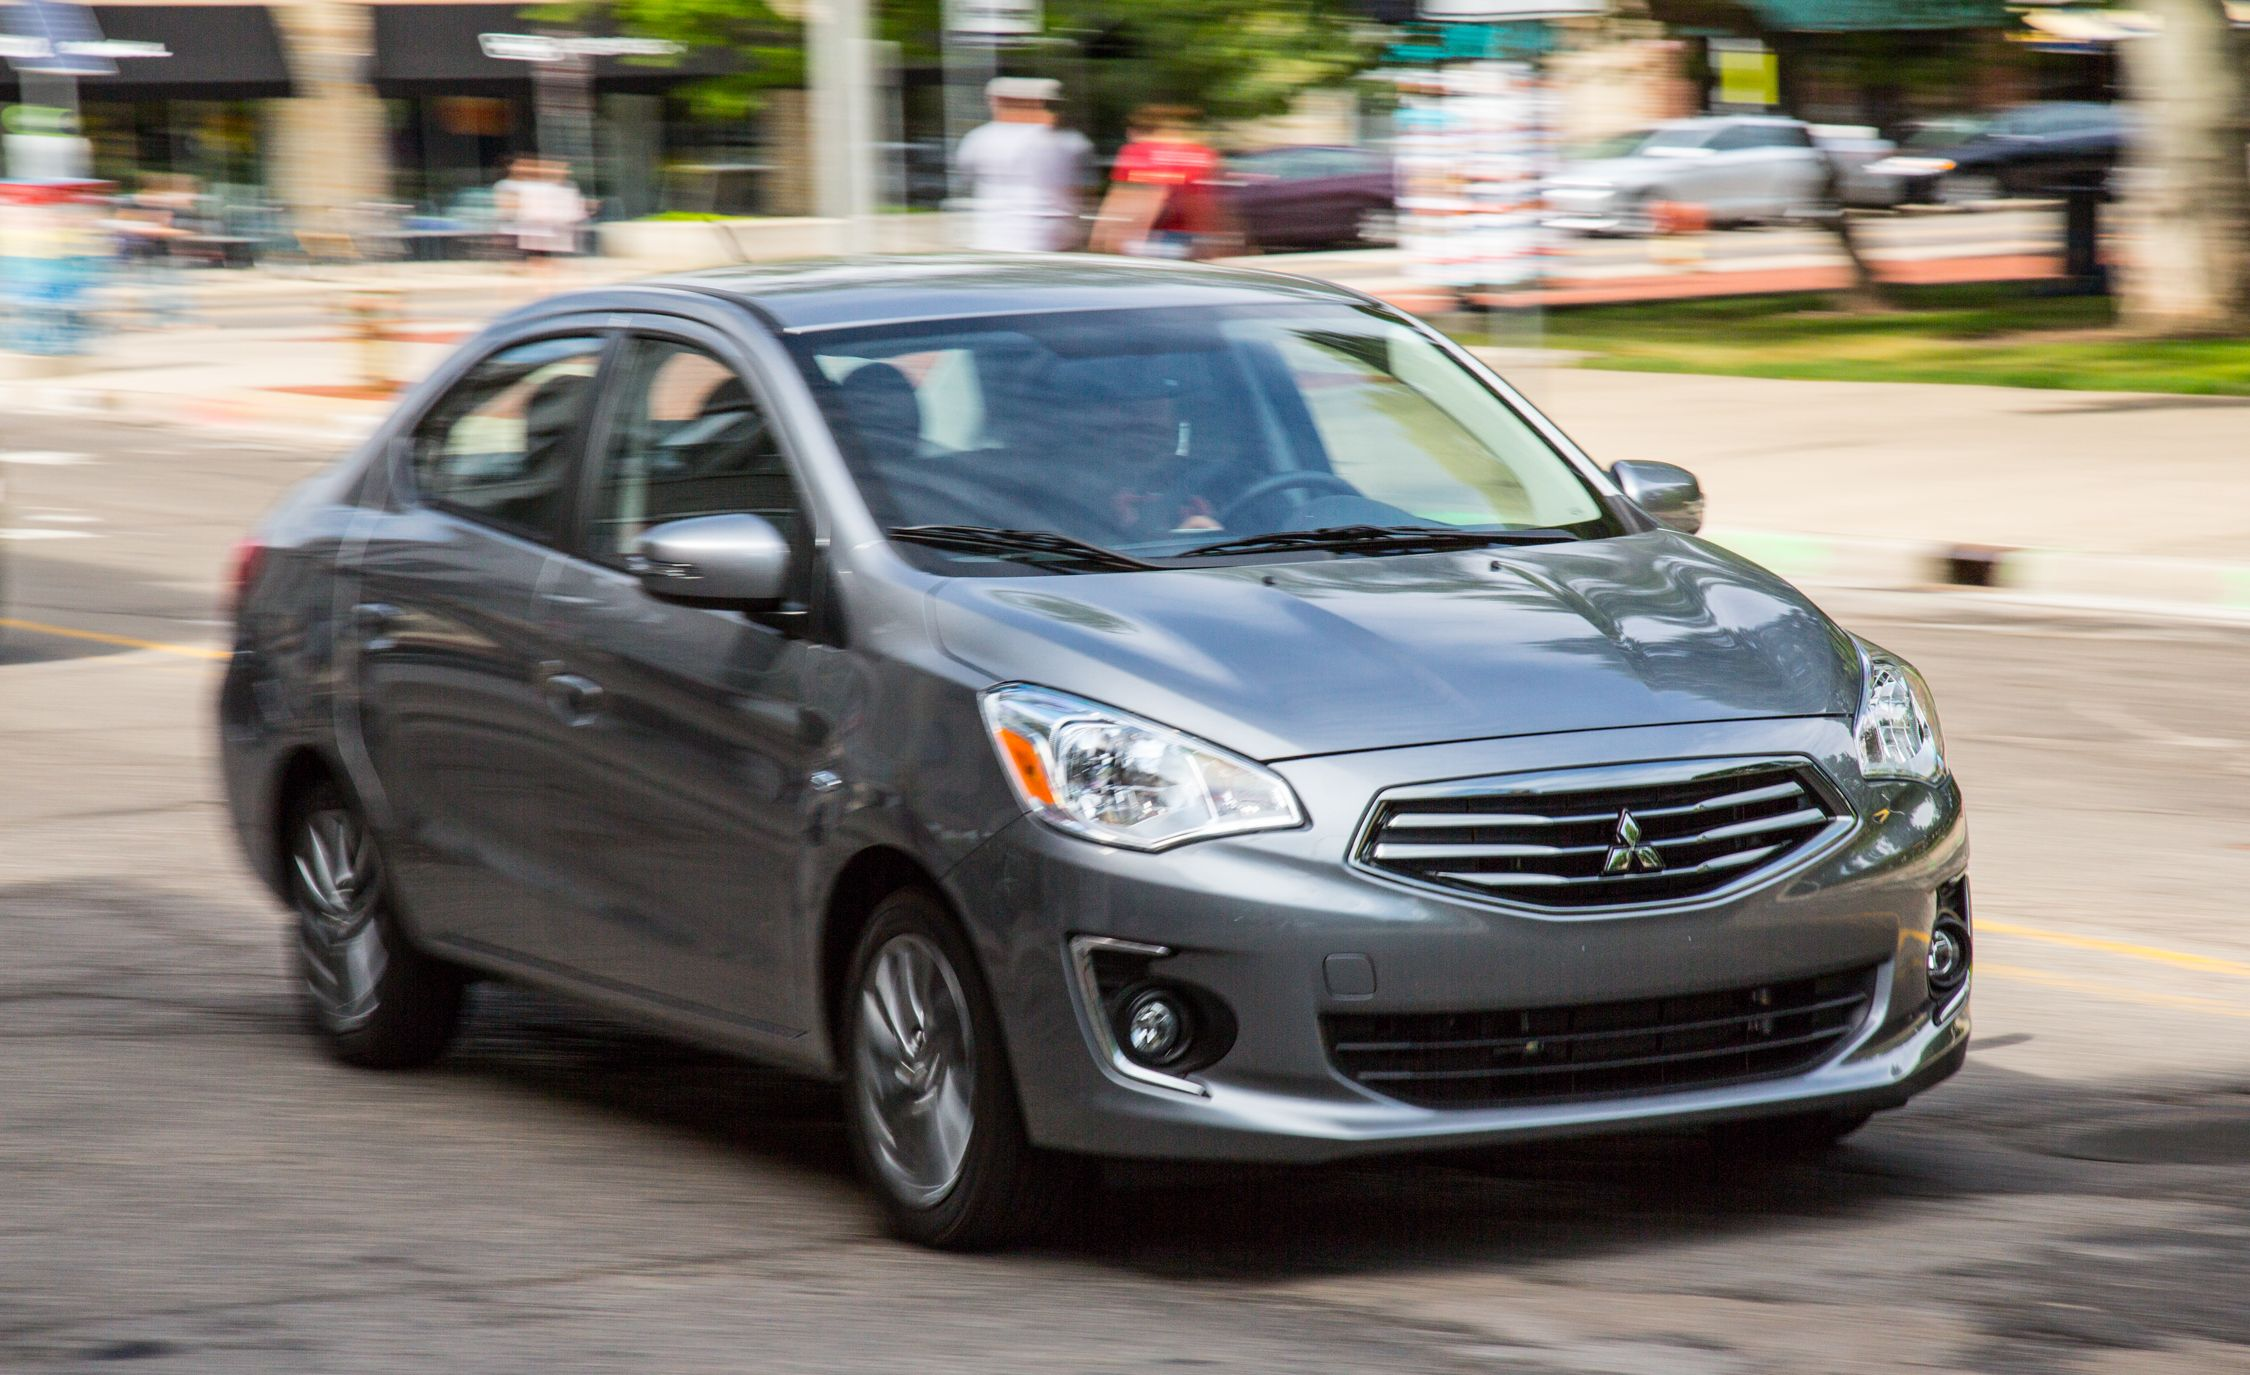 2019 Mitsubishi Mirage G4 Reviews Price Photos And Specs Car Driver